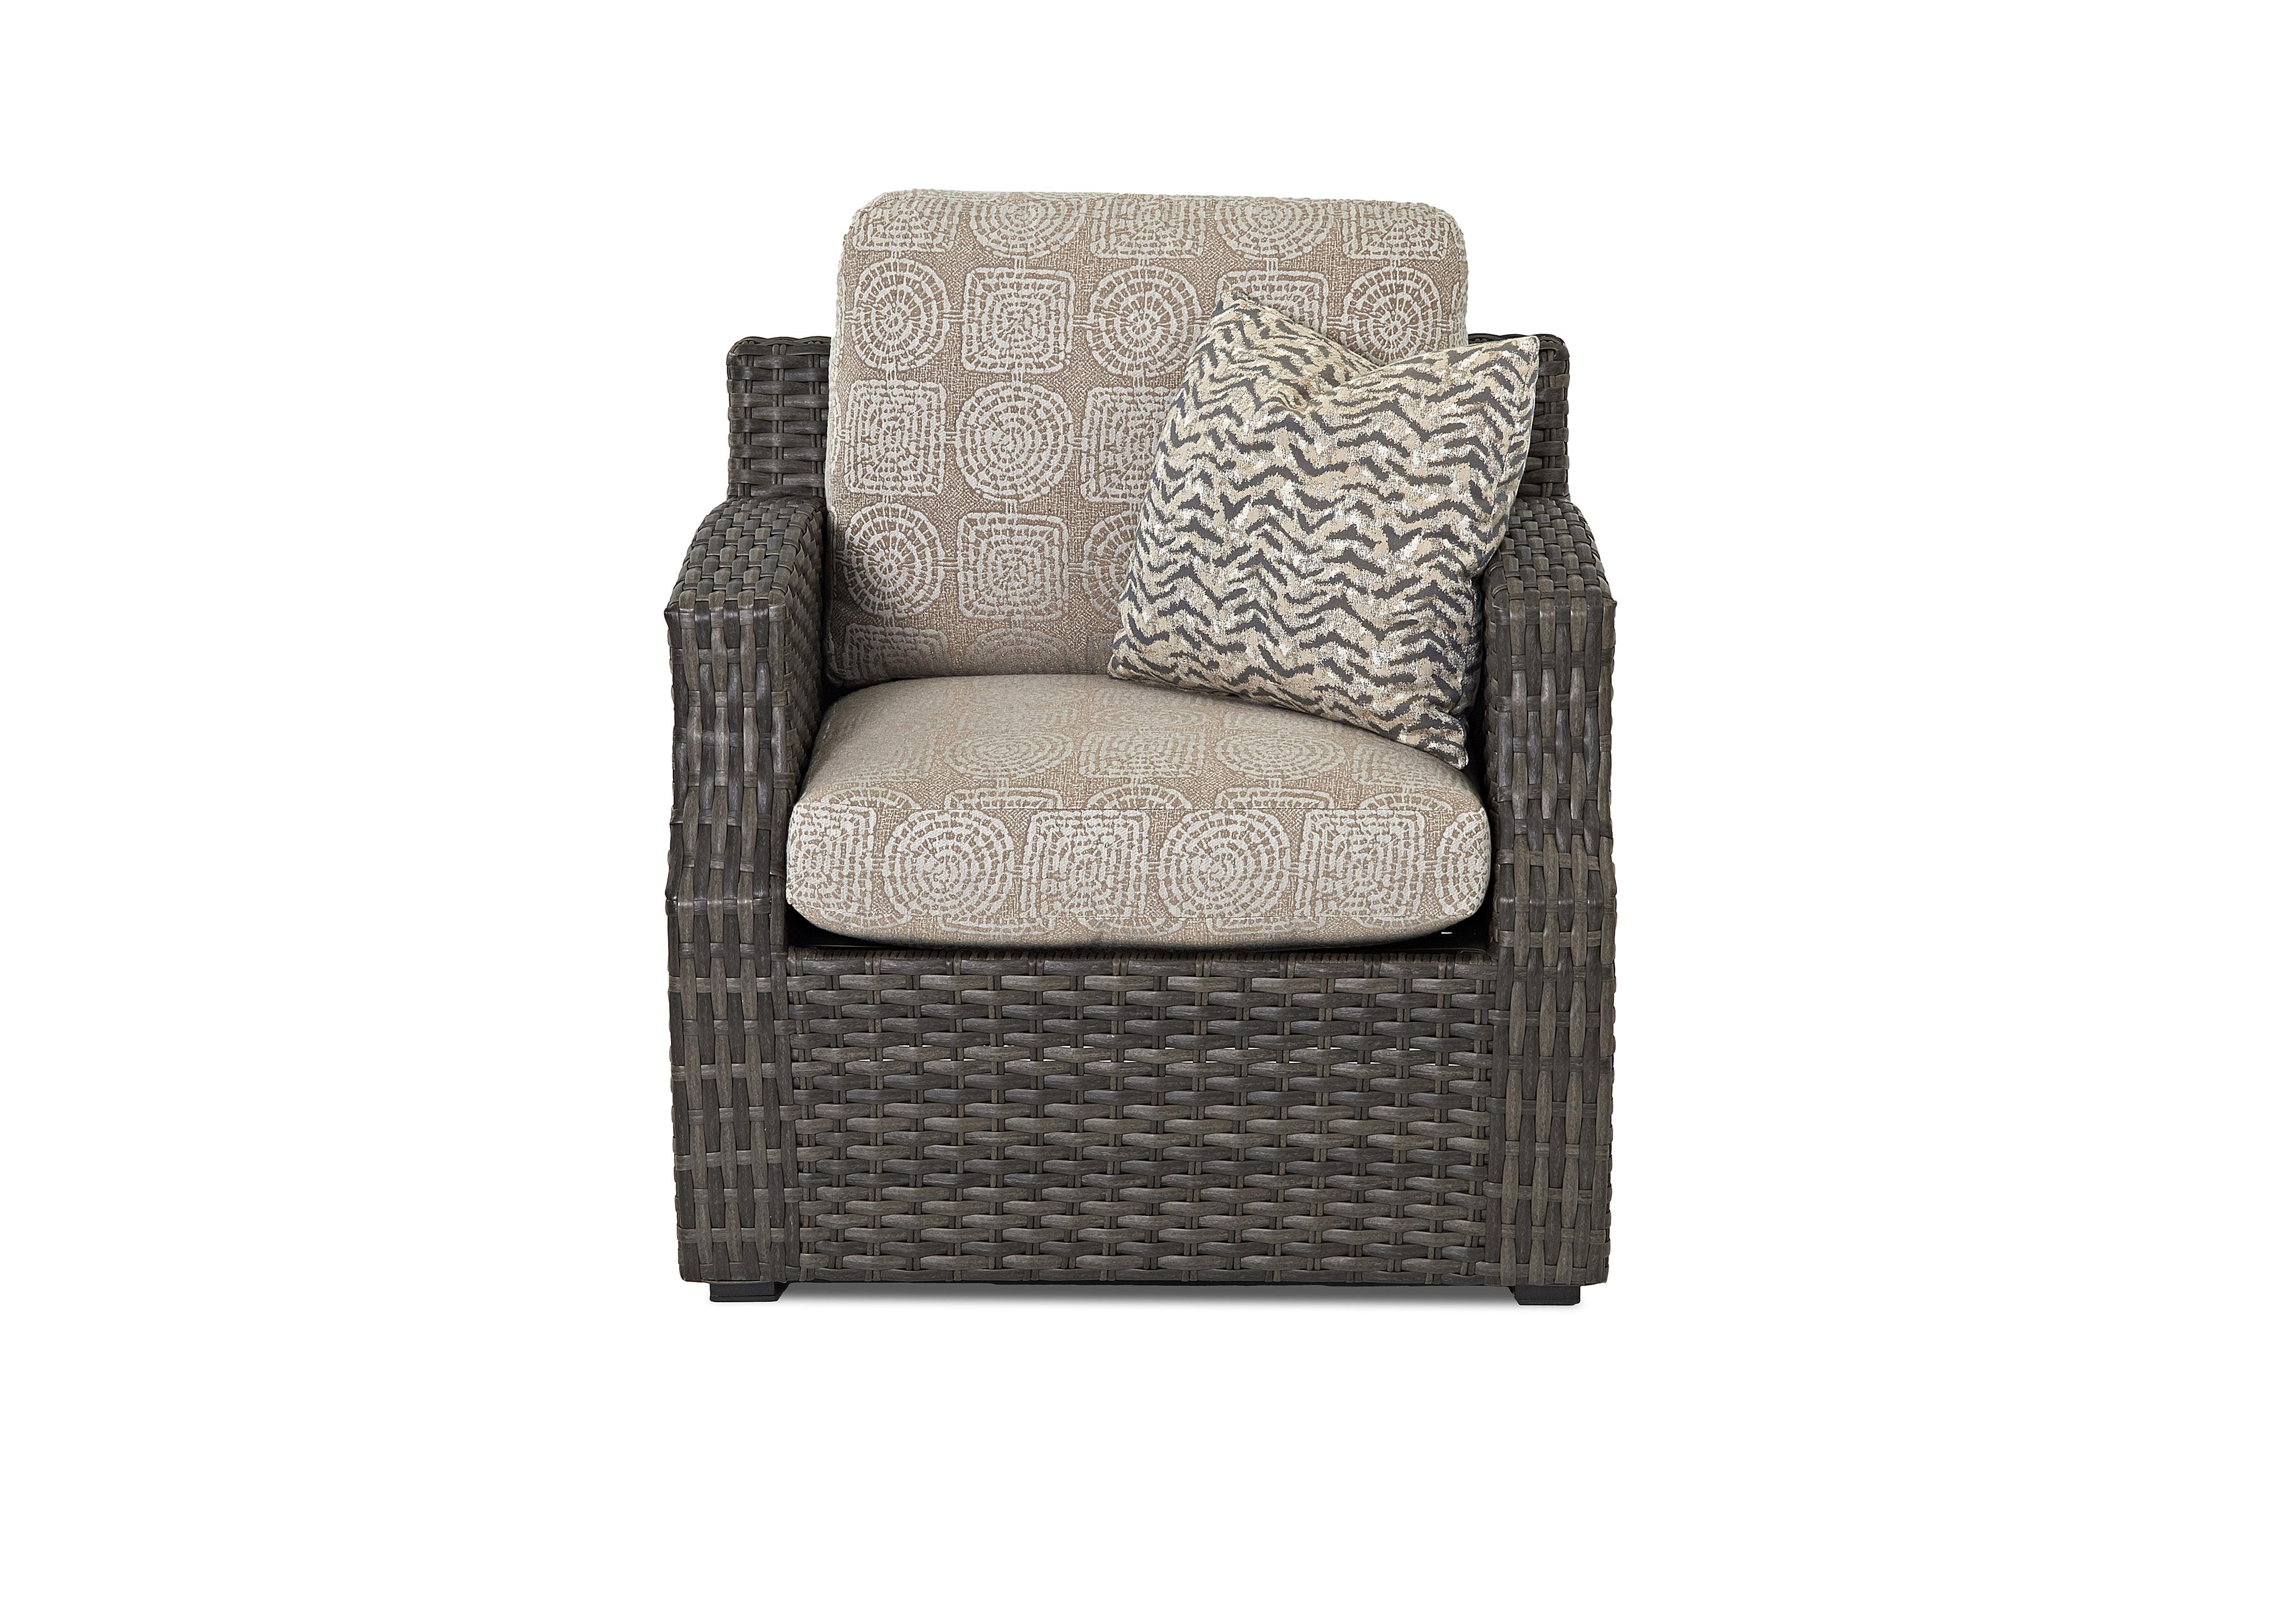 Cascade Outdoor Chair by Klaussner Outdoor at Fine Home Furnishings